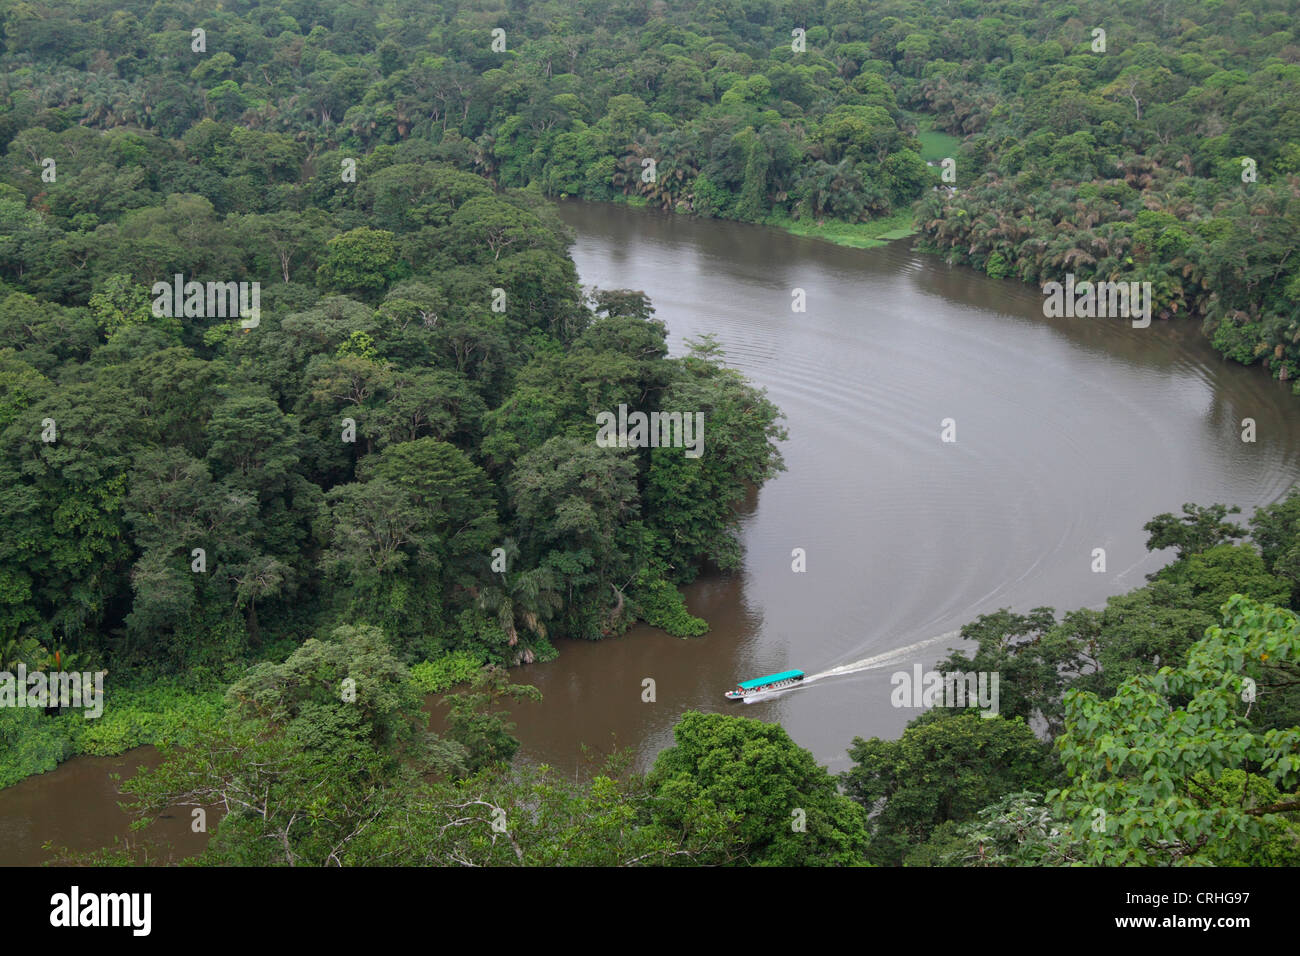 Tourist boat on natural rainforest canal from Tortuguero Hill (Cerro Tortuguero). Barro Colorado Wildlife Refuge. - Stock Image